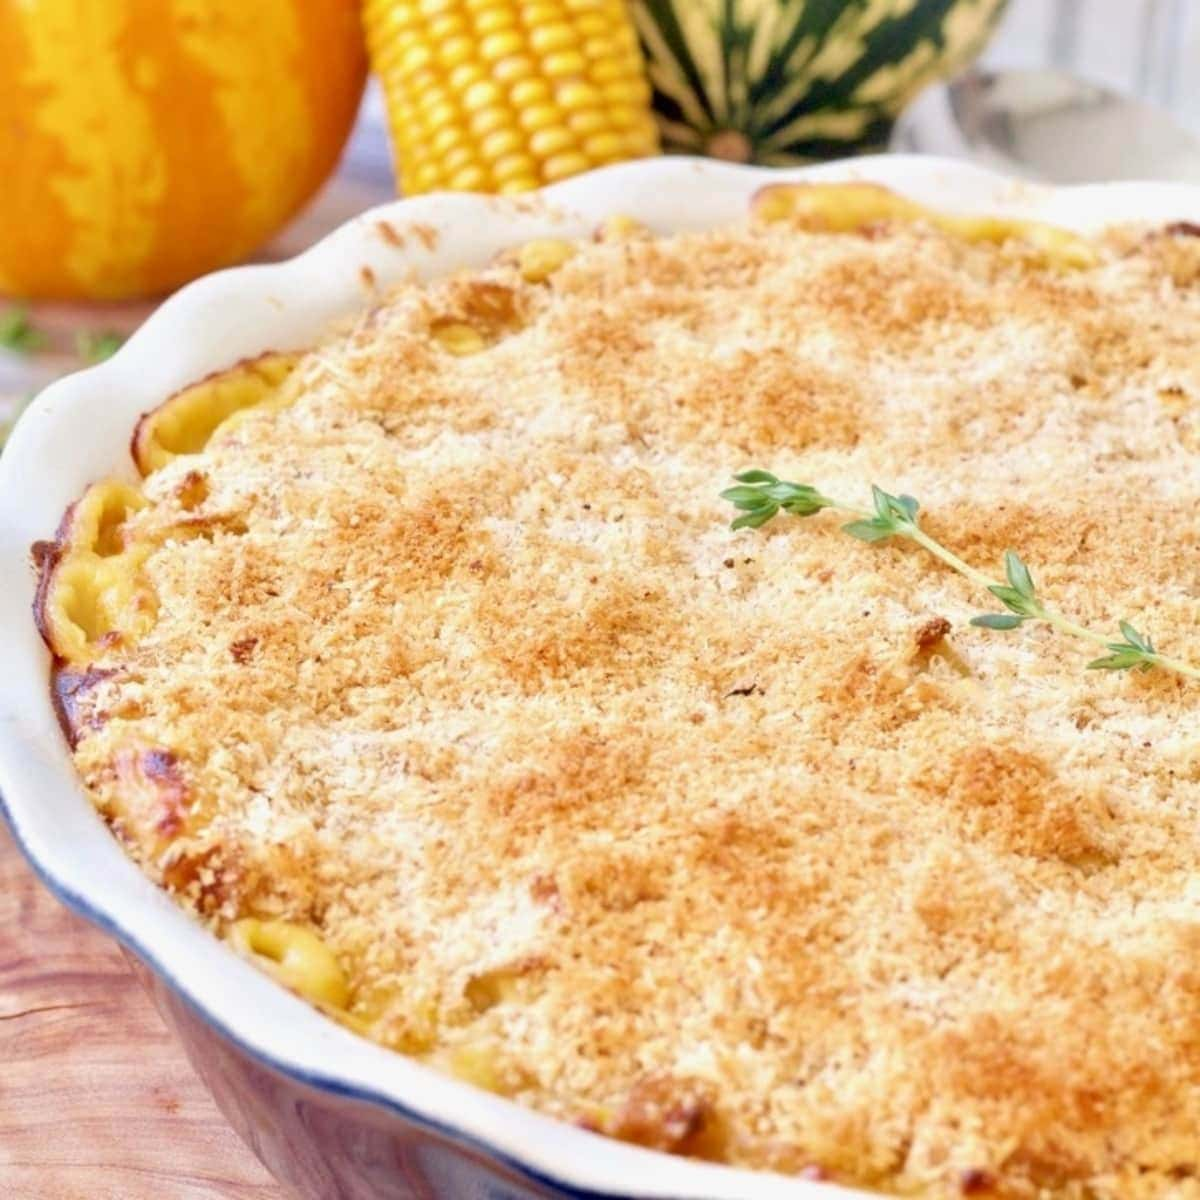 Mac and cheese baked in a dish.